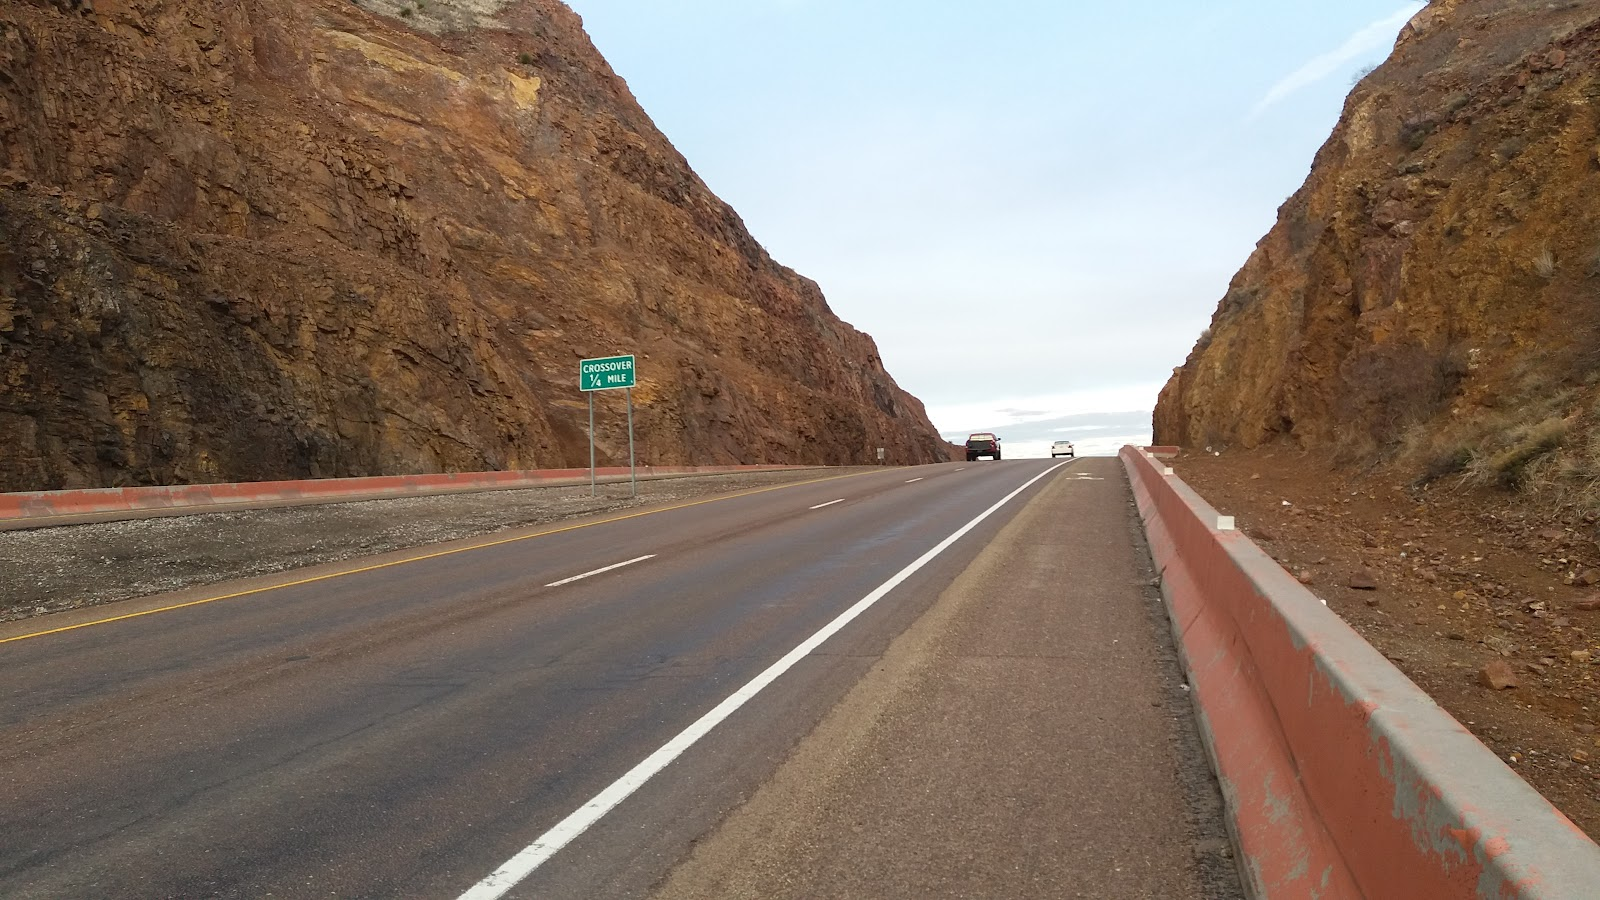 Cycling Smugglers Pass East - Transmountain Drive - the pass and elevation sign